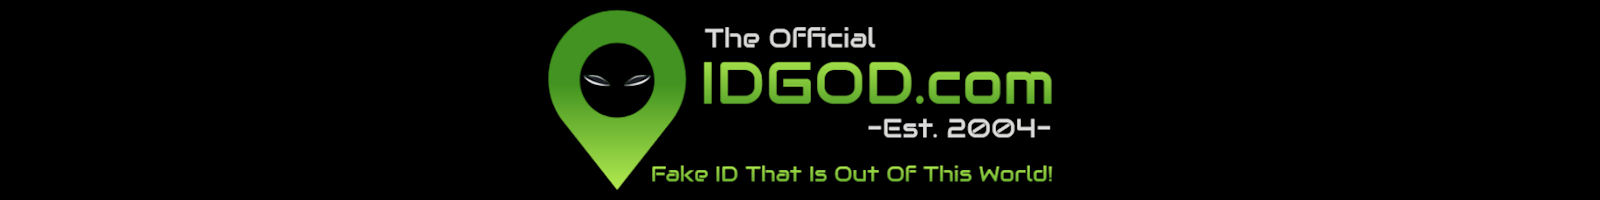 Official ID God Logo